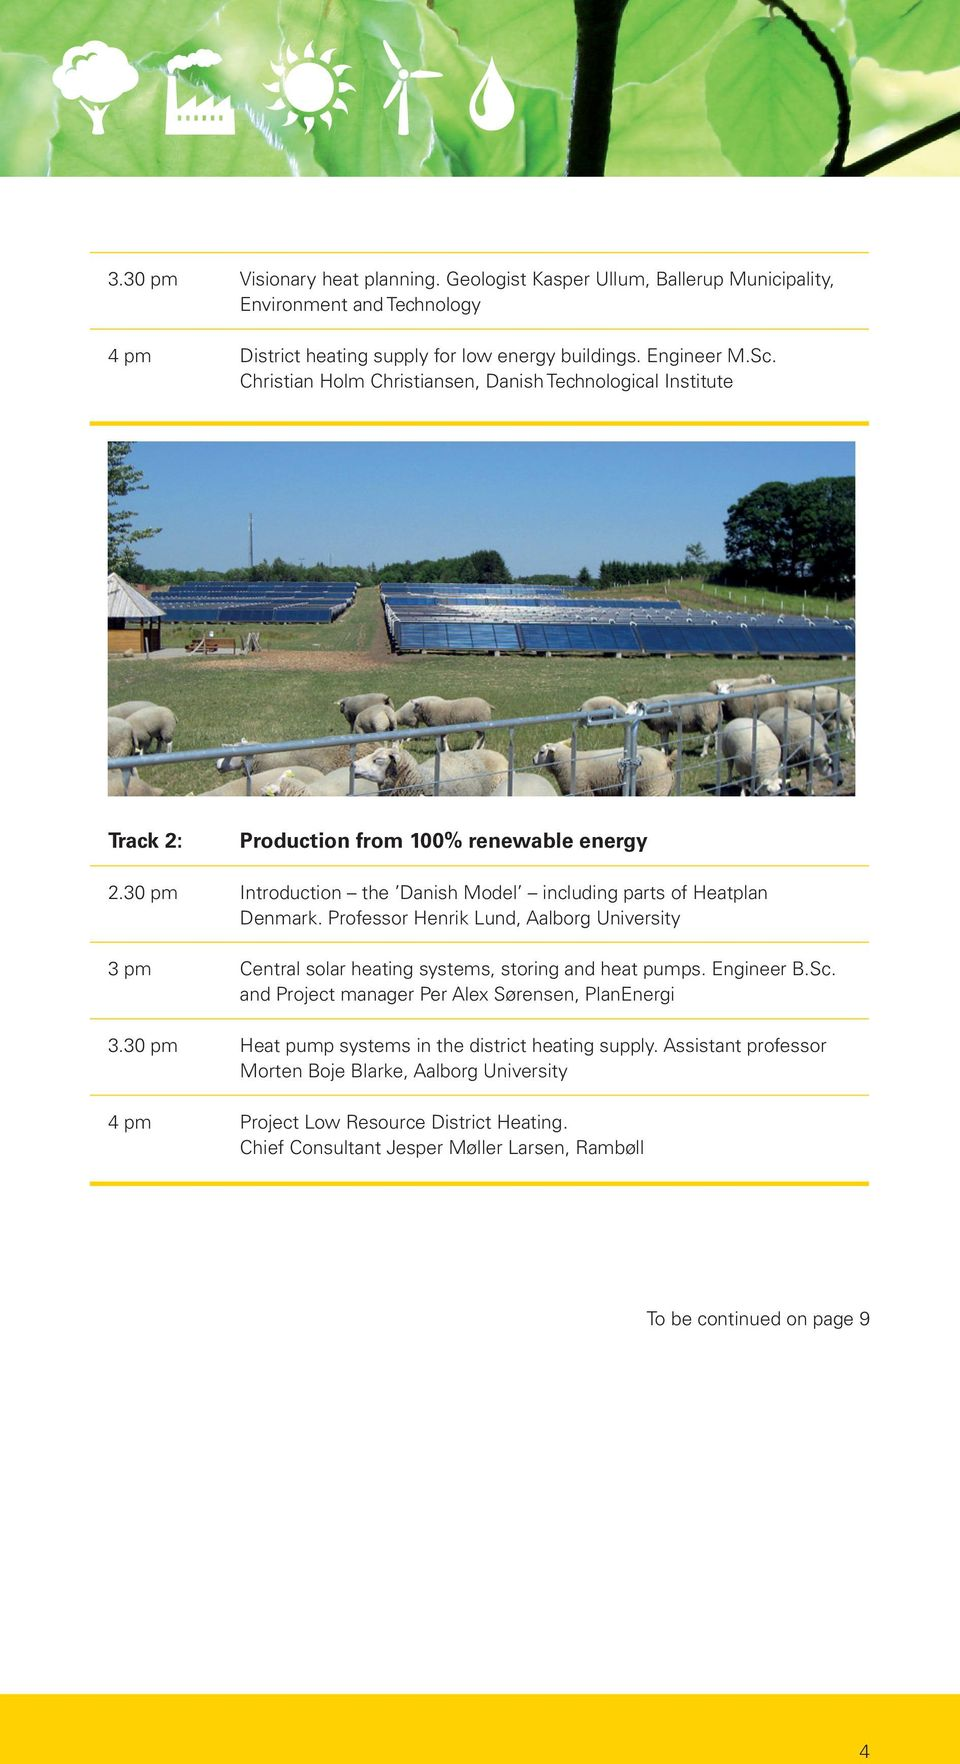 Christian Holm Christiansen, Danish Technological Institute Track 2: Production from 100% renewable energy 2.30 pm Introduction the Danish Model including parts of Heatplan Denmark.